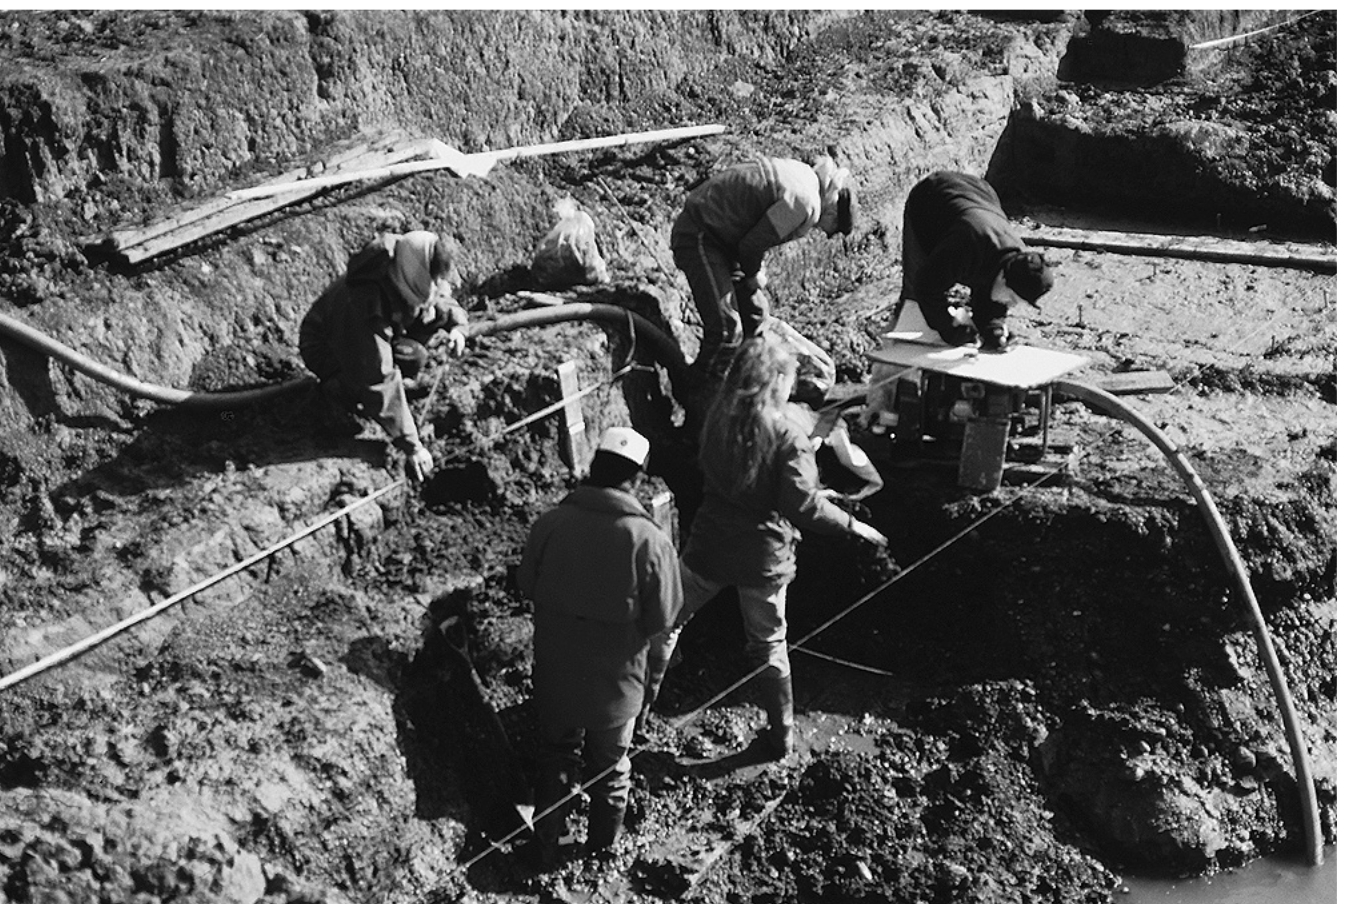 A black and white photograph showing several people working in an excavated trench. The lower layers are very muddy, and water is being pumped up from the bottom.